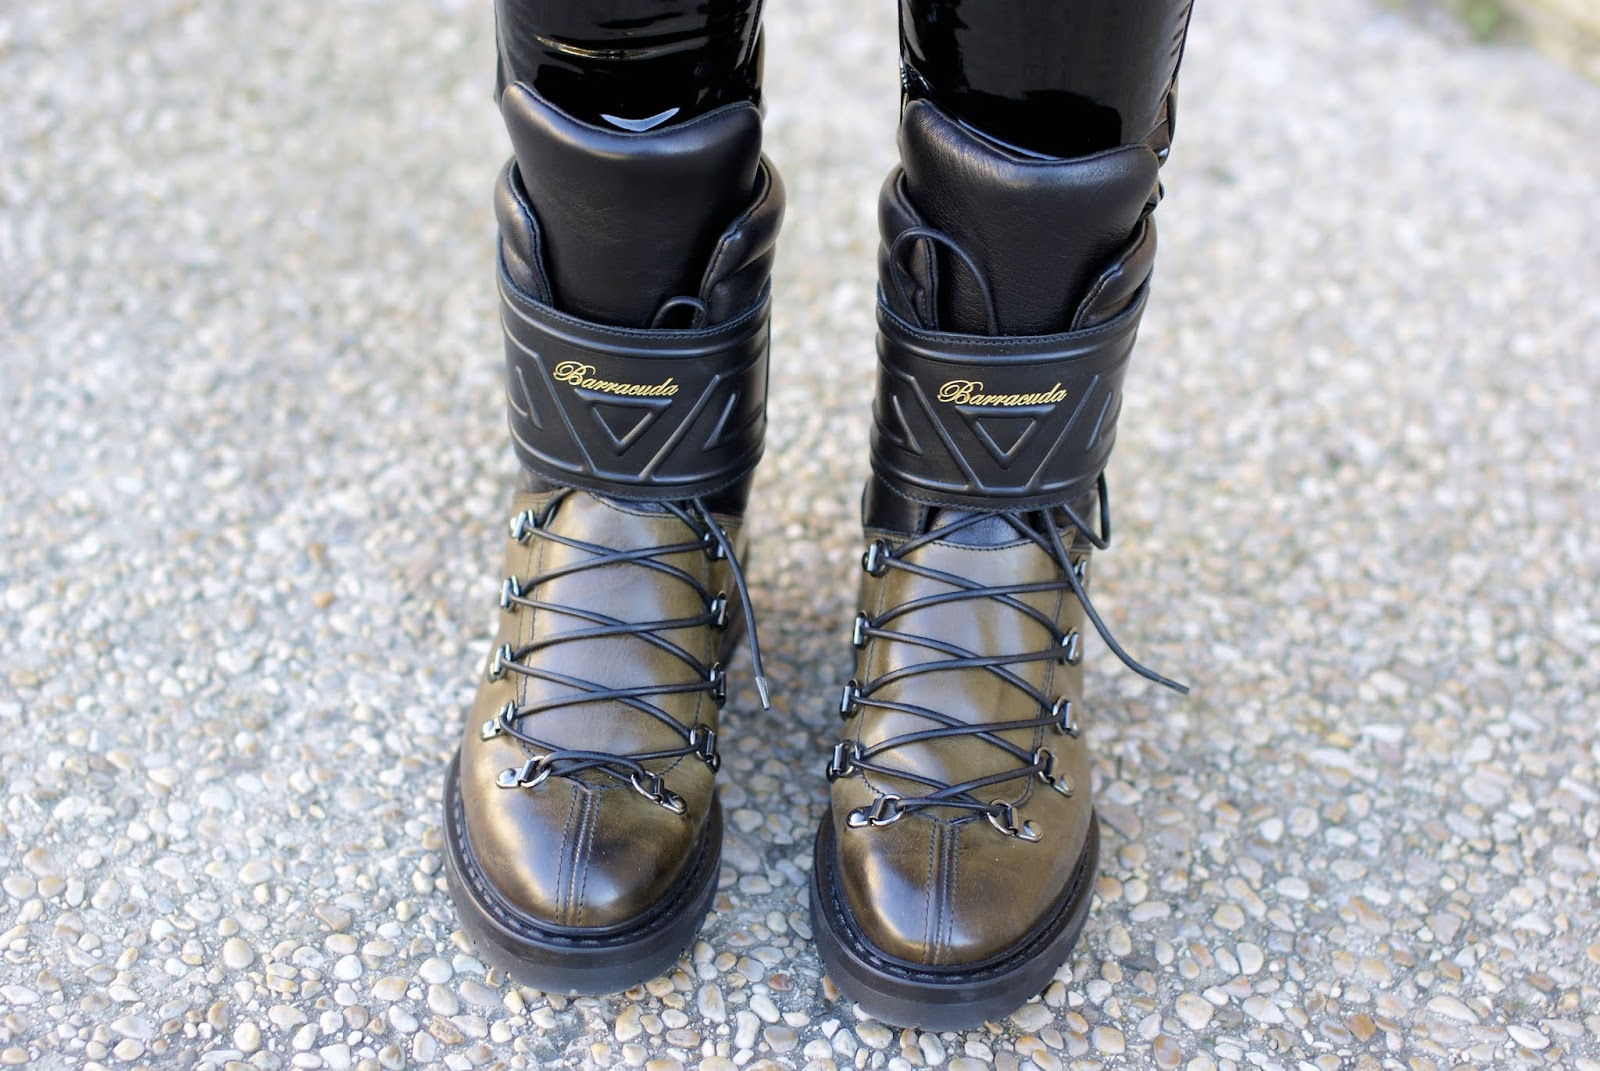 Barracuda combat boots Fashion and Cookies fashion blog, fashion blogger